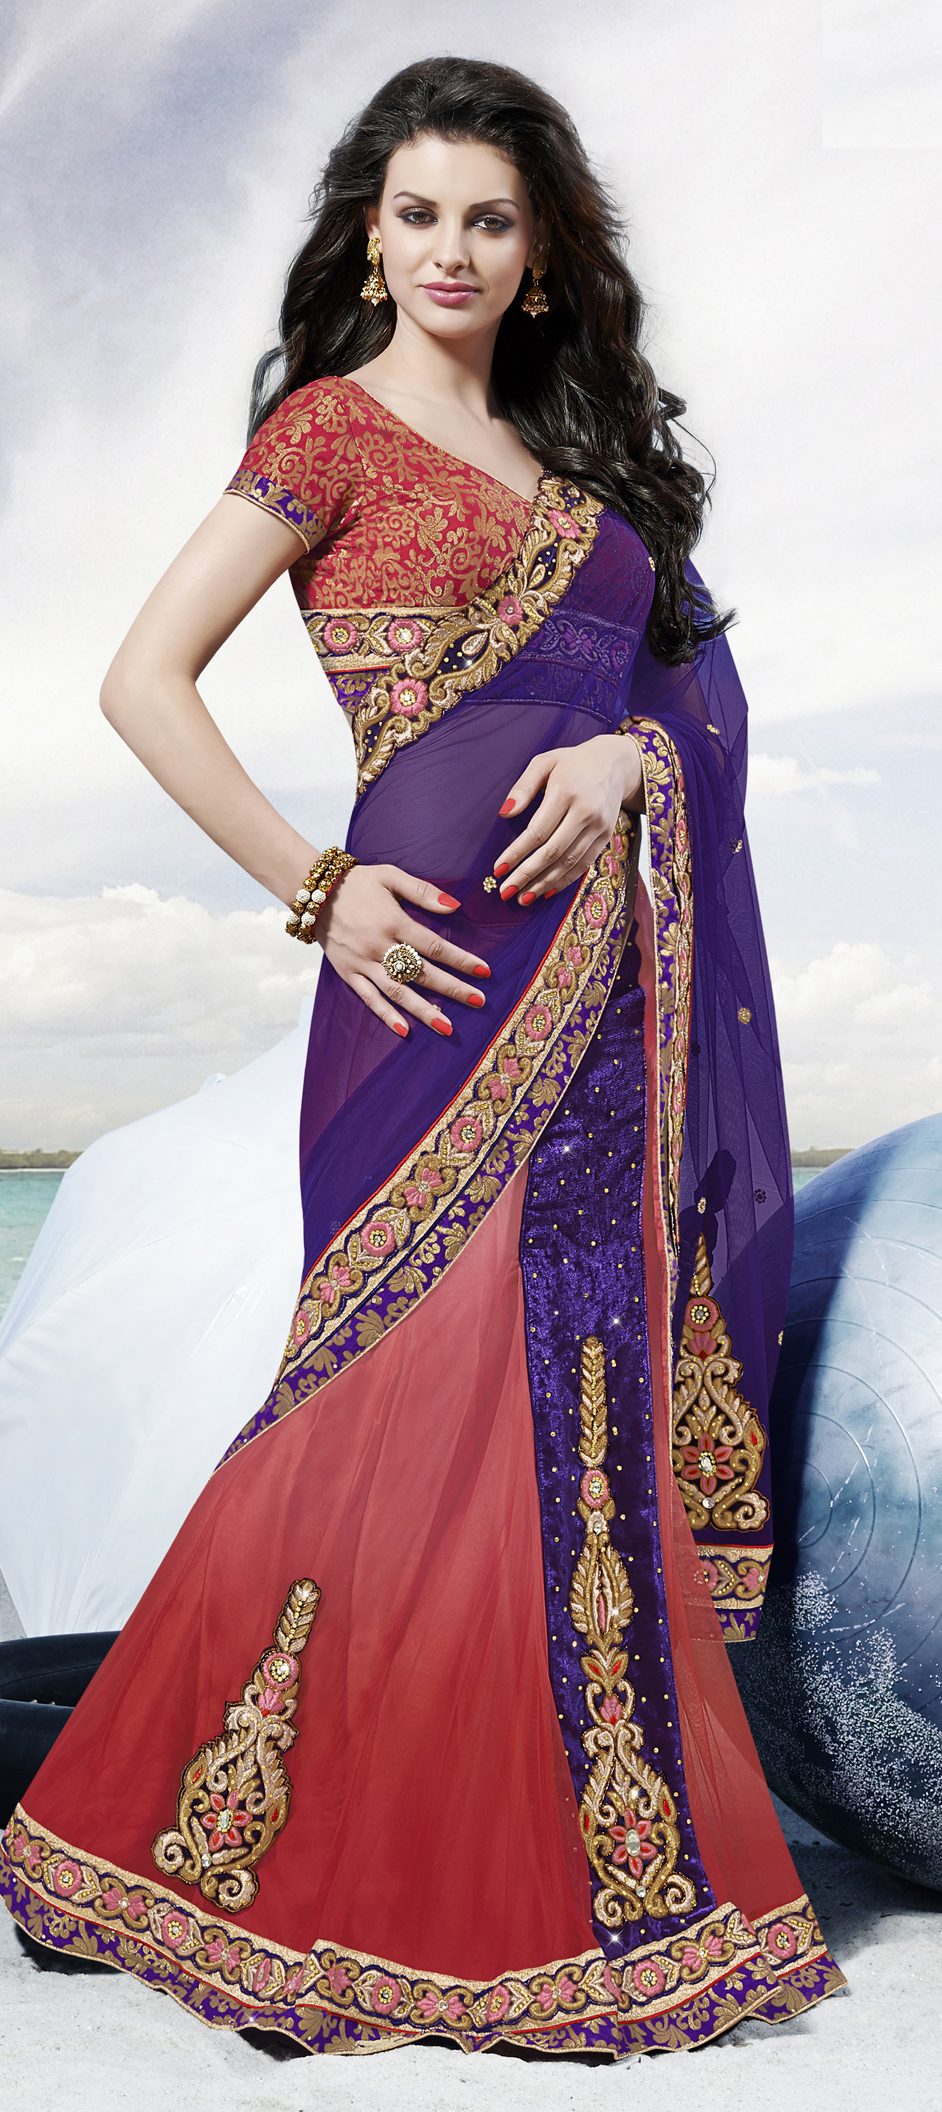 166204: Red and Maroon, Purple and Violet color family Saree with ...